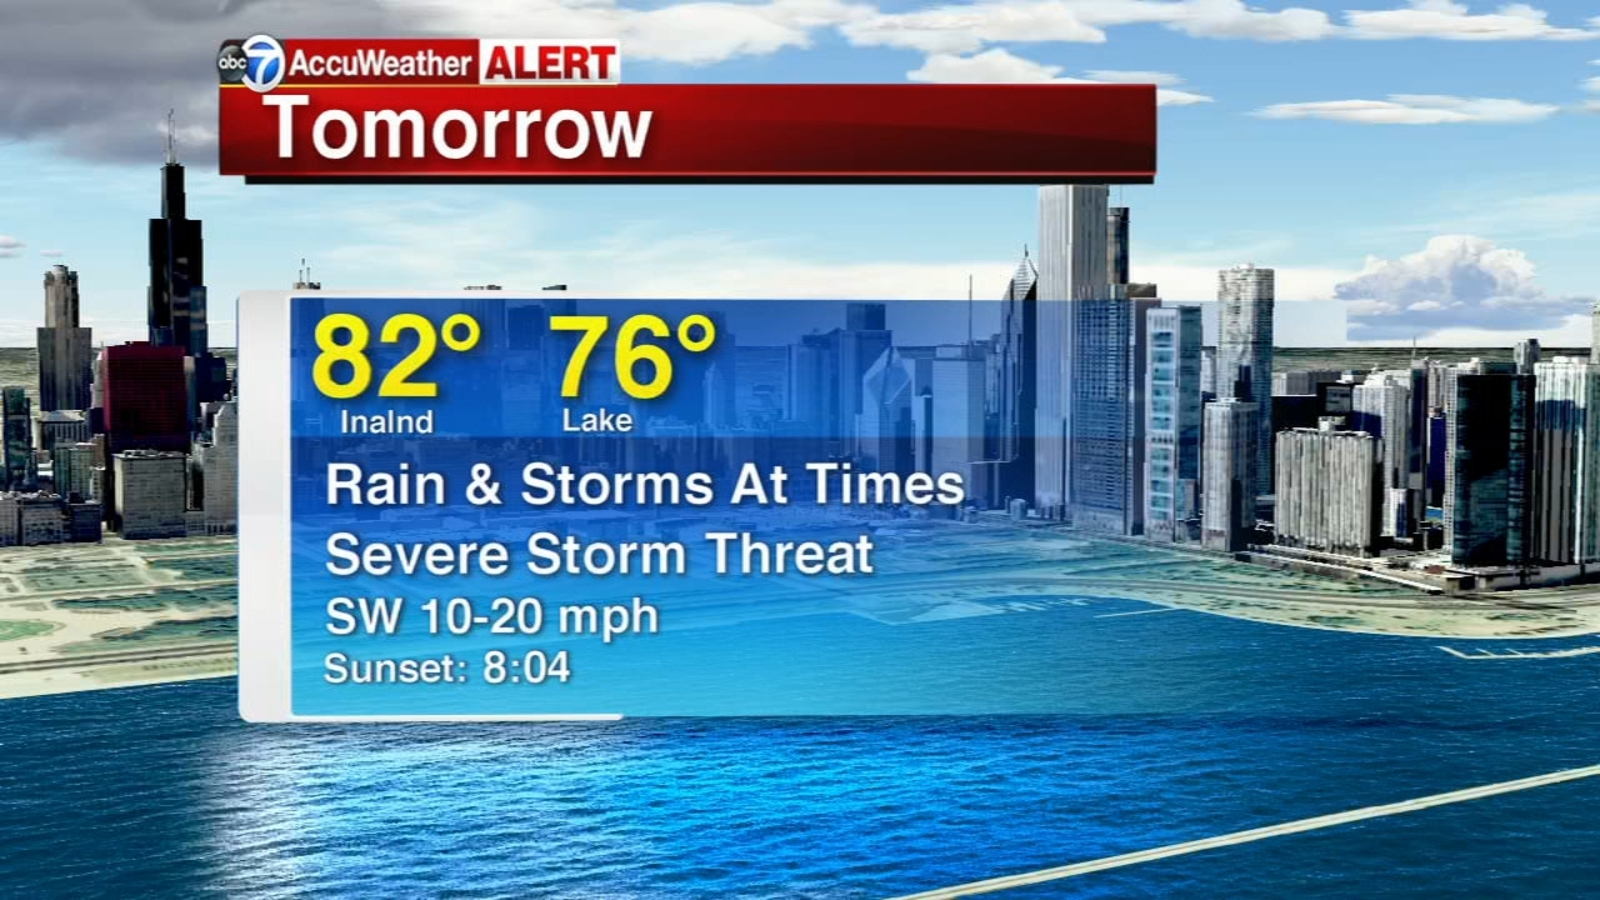 Chicago Accuweather Very Warm Rain Possibility Of Severe Storms